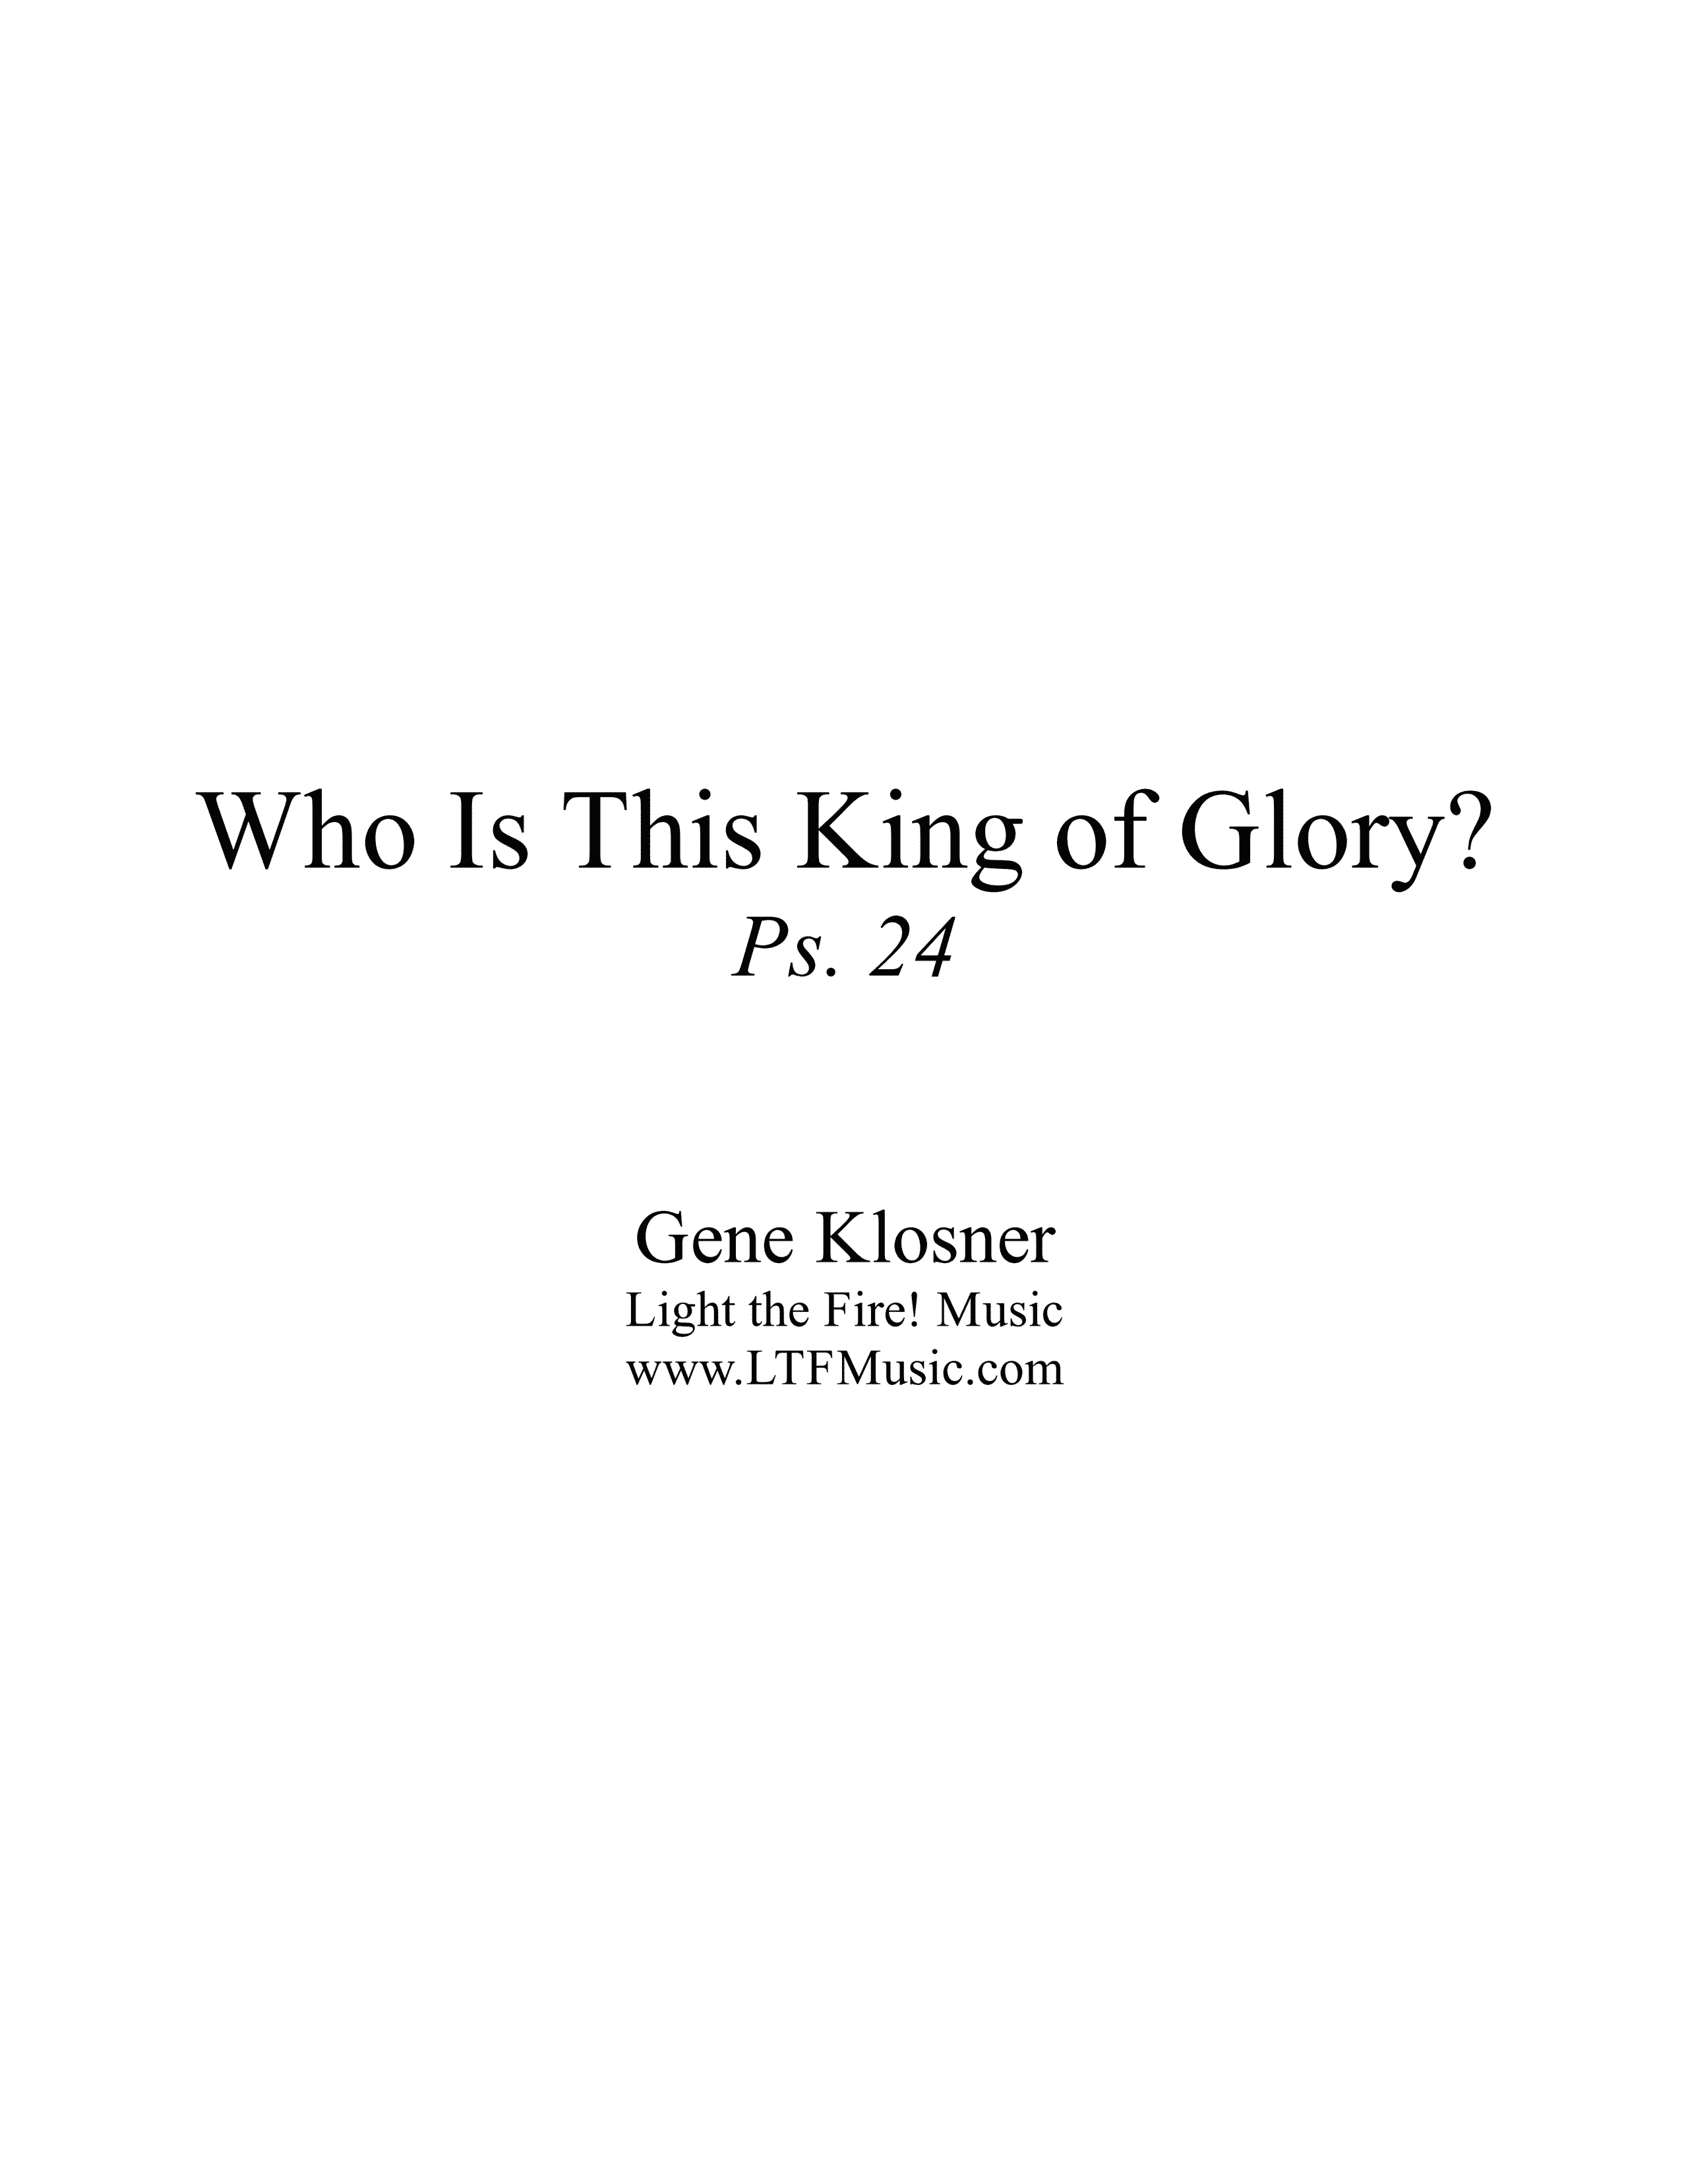 Who Is This King of Glory Klosner Sample CompletePDF 1 png